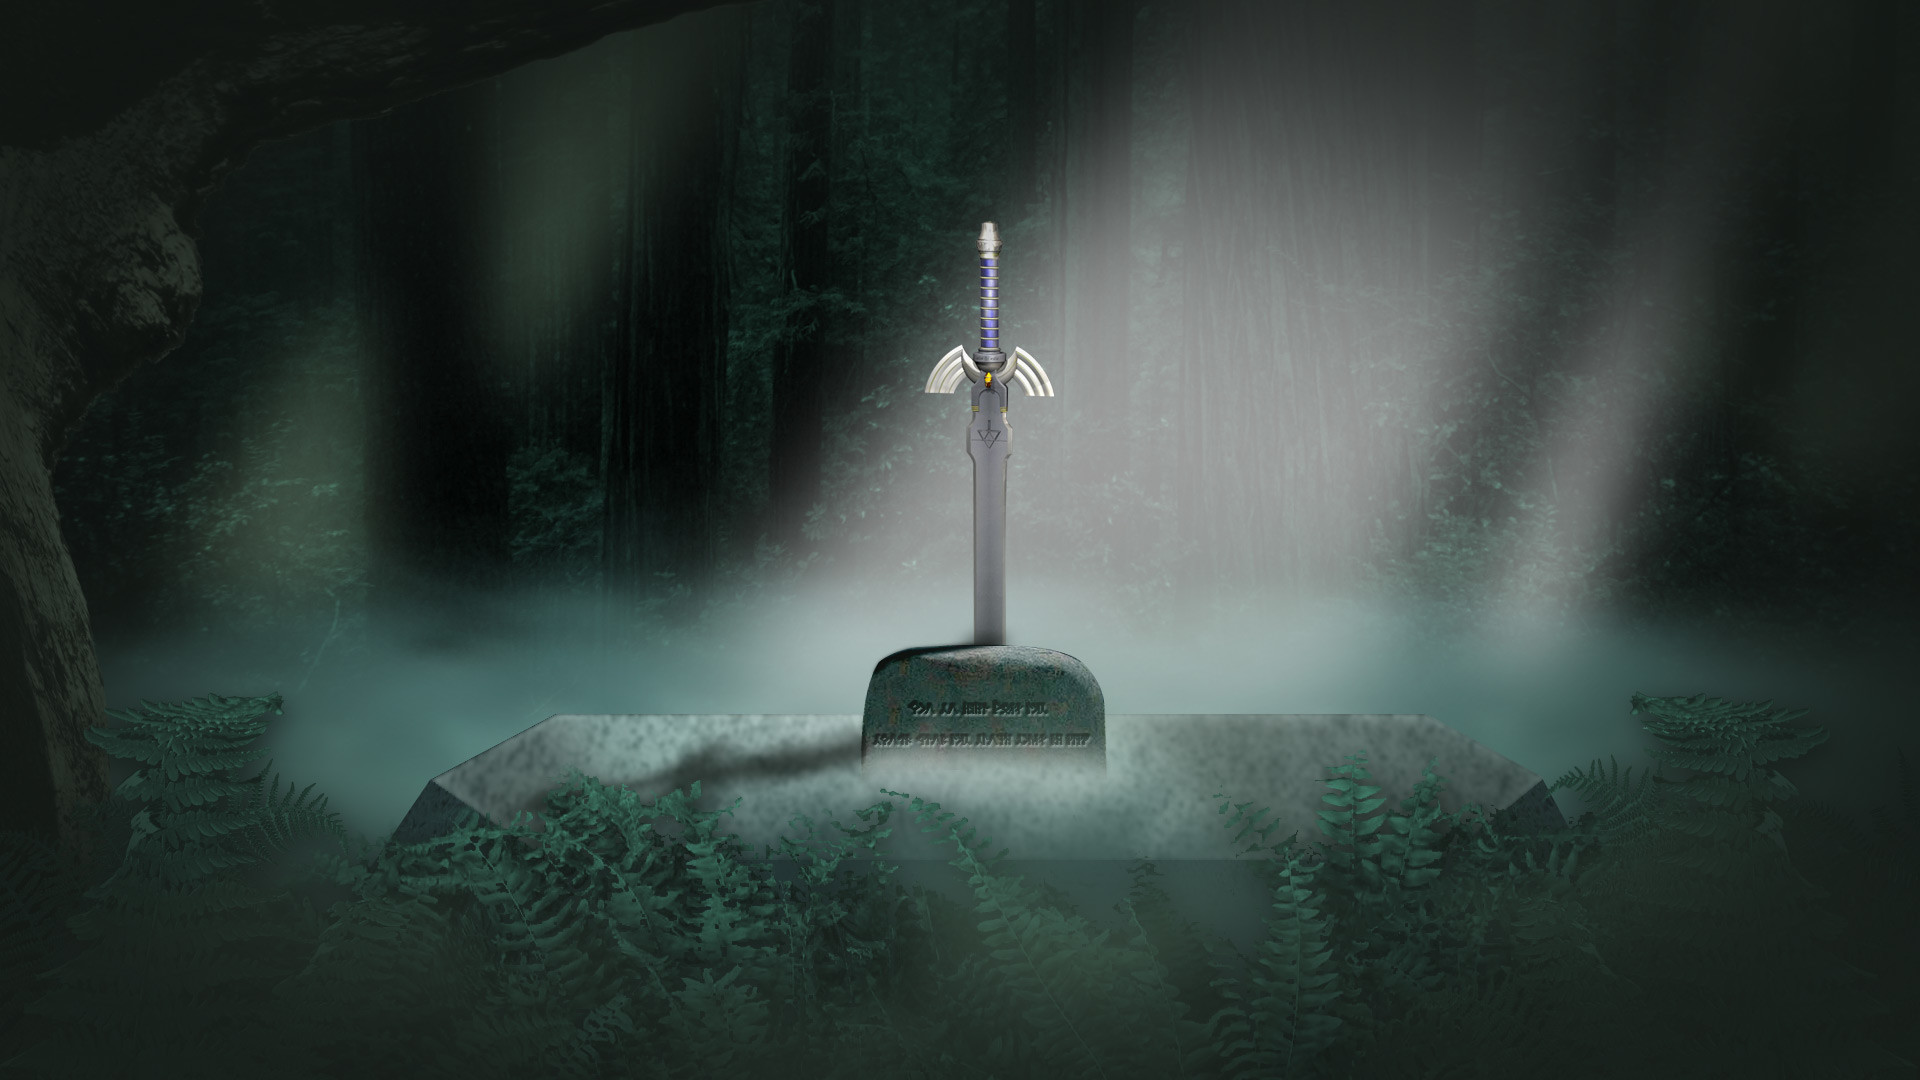 1920x1080 Pin Master Sword Wallpaper Graphics Code Comments Kootationcom on